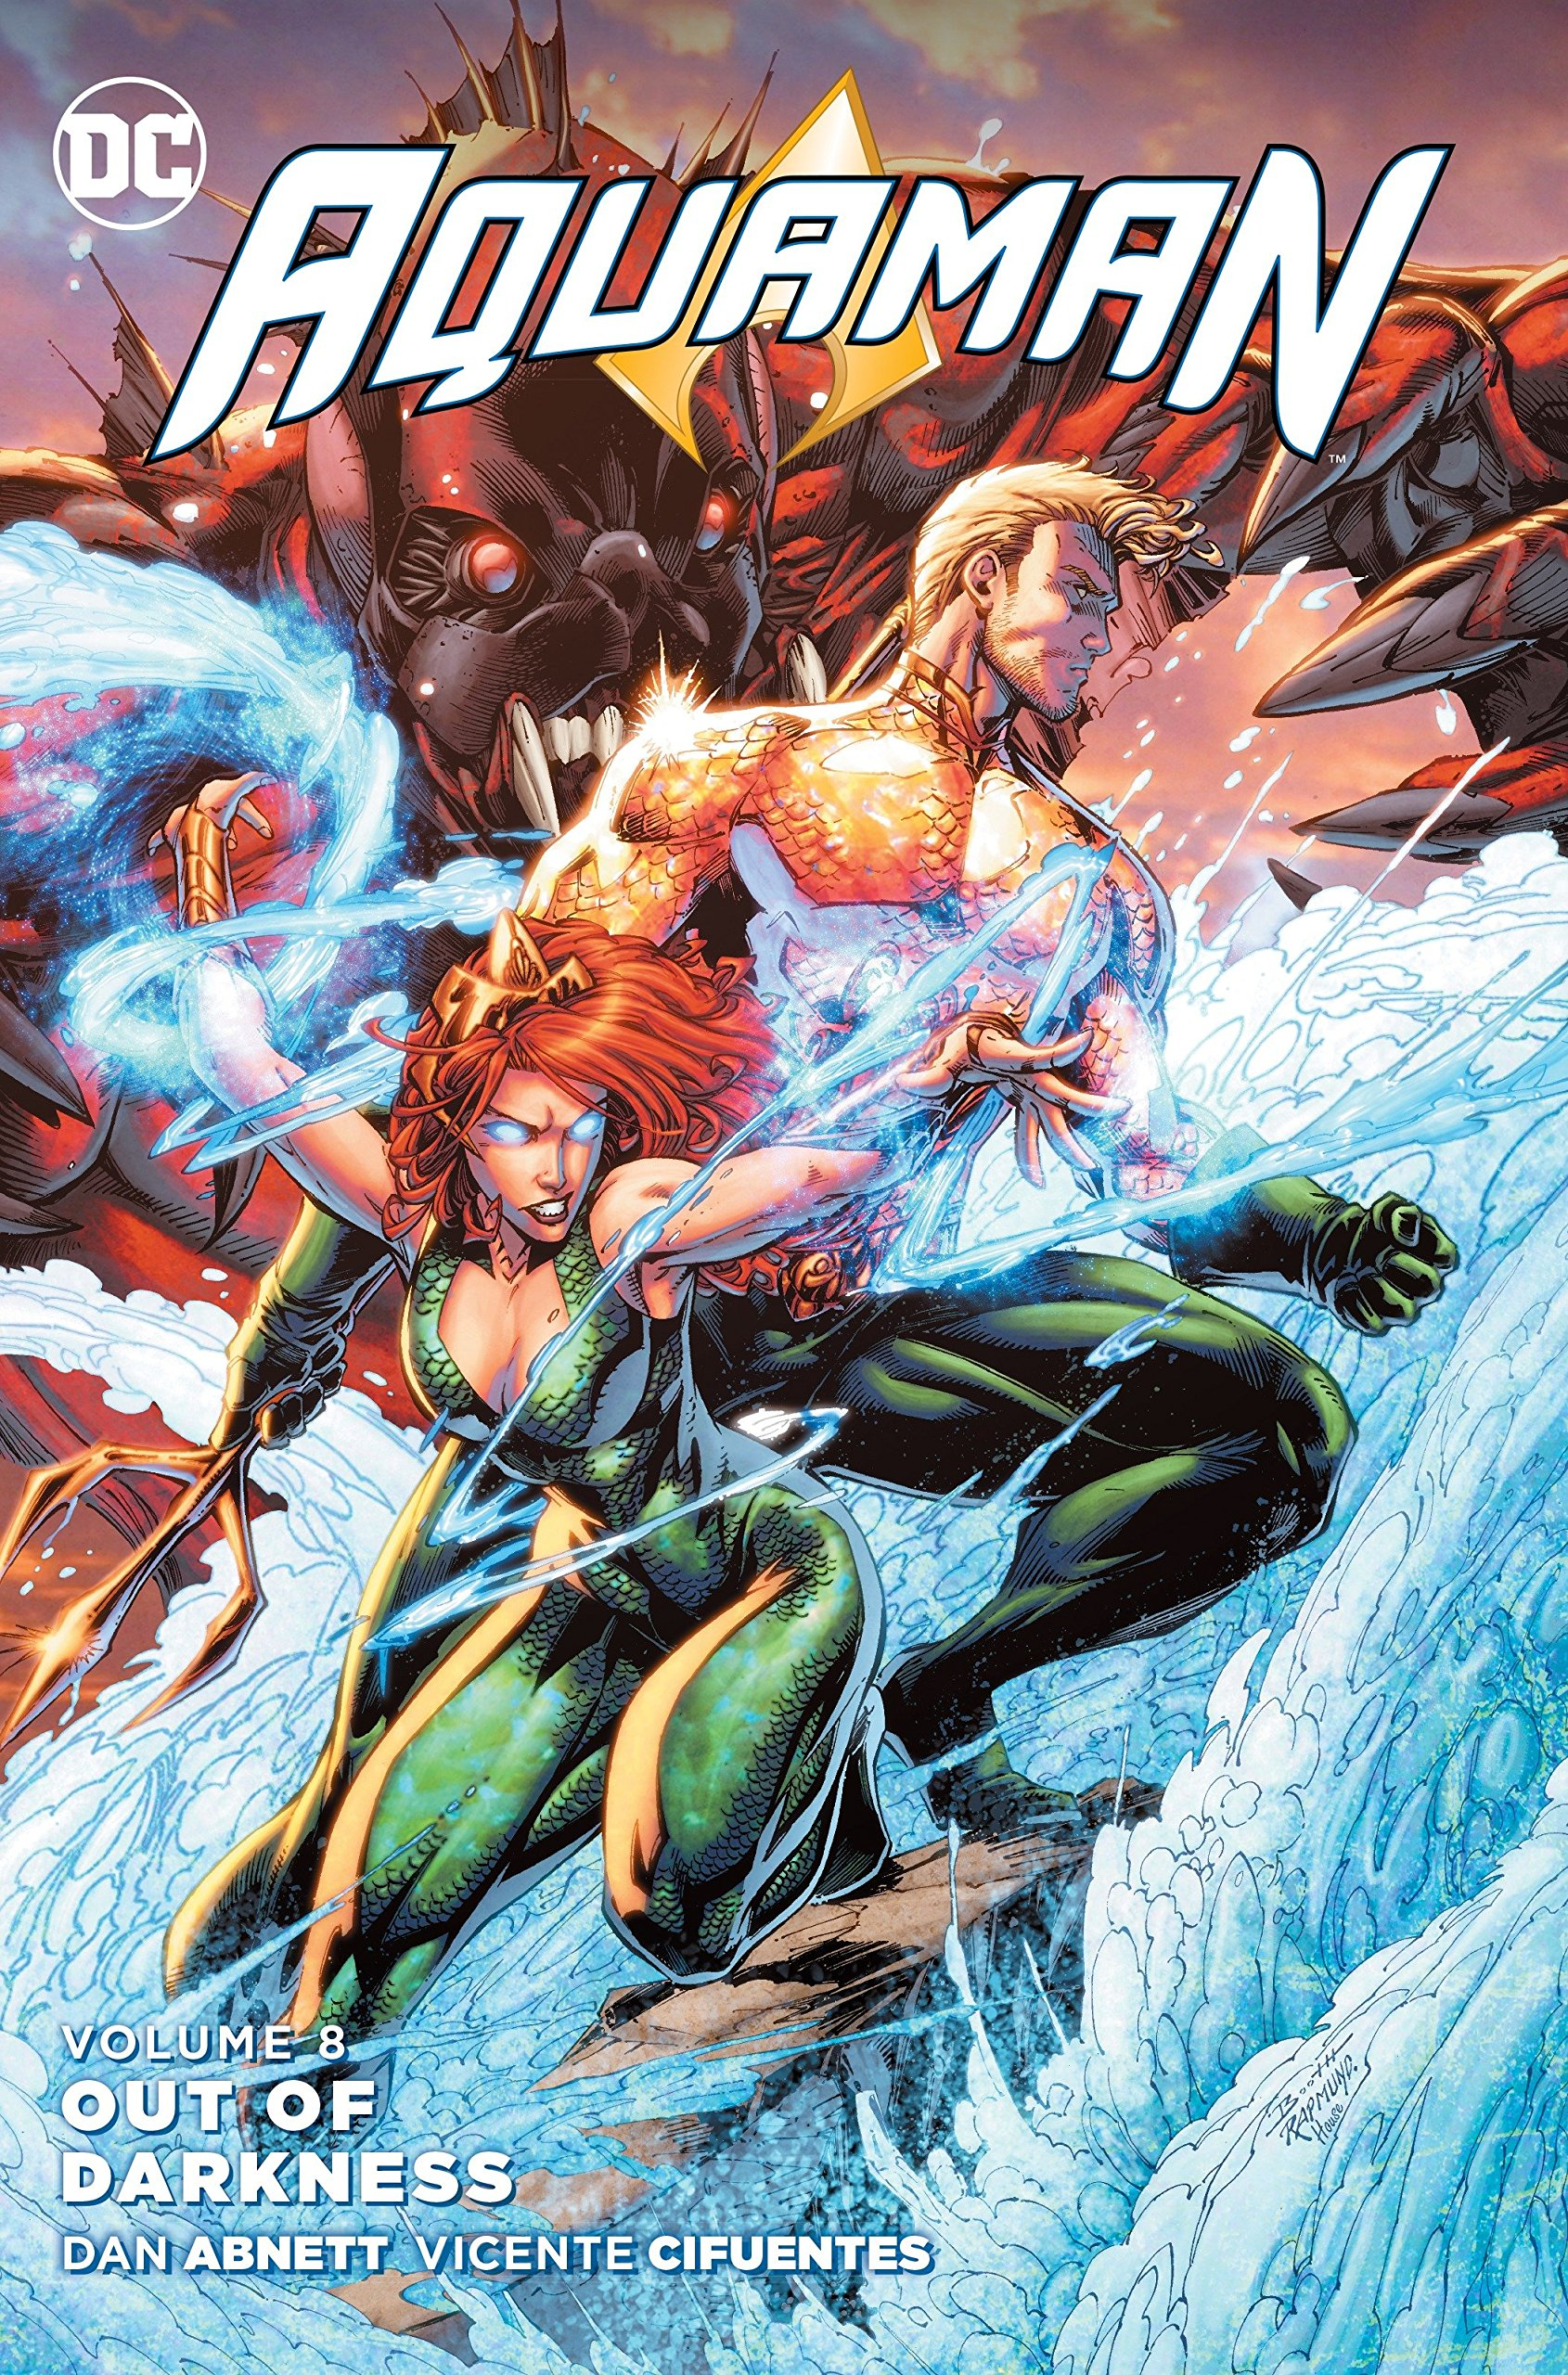 Aquaman Vol. 8 Out of Darkness PDF